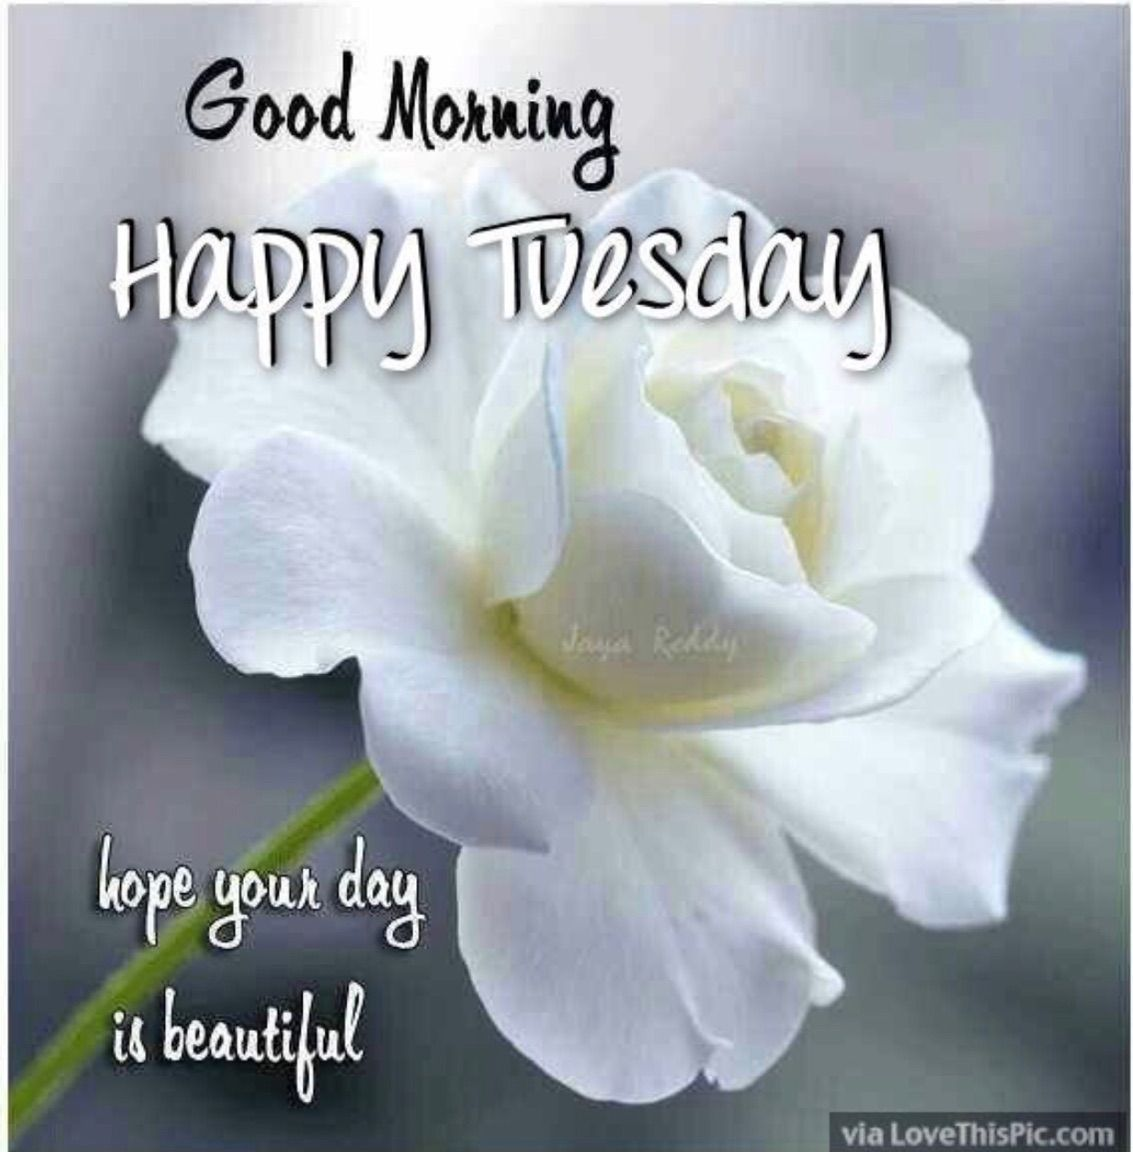 Pin by beverley green on quotes pinterest tuesday greetings tuesday greetings morning sayings good morning wishes daily inspiration roses encouragement scriptures happy birthday inspirational quotes m4hsunfo